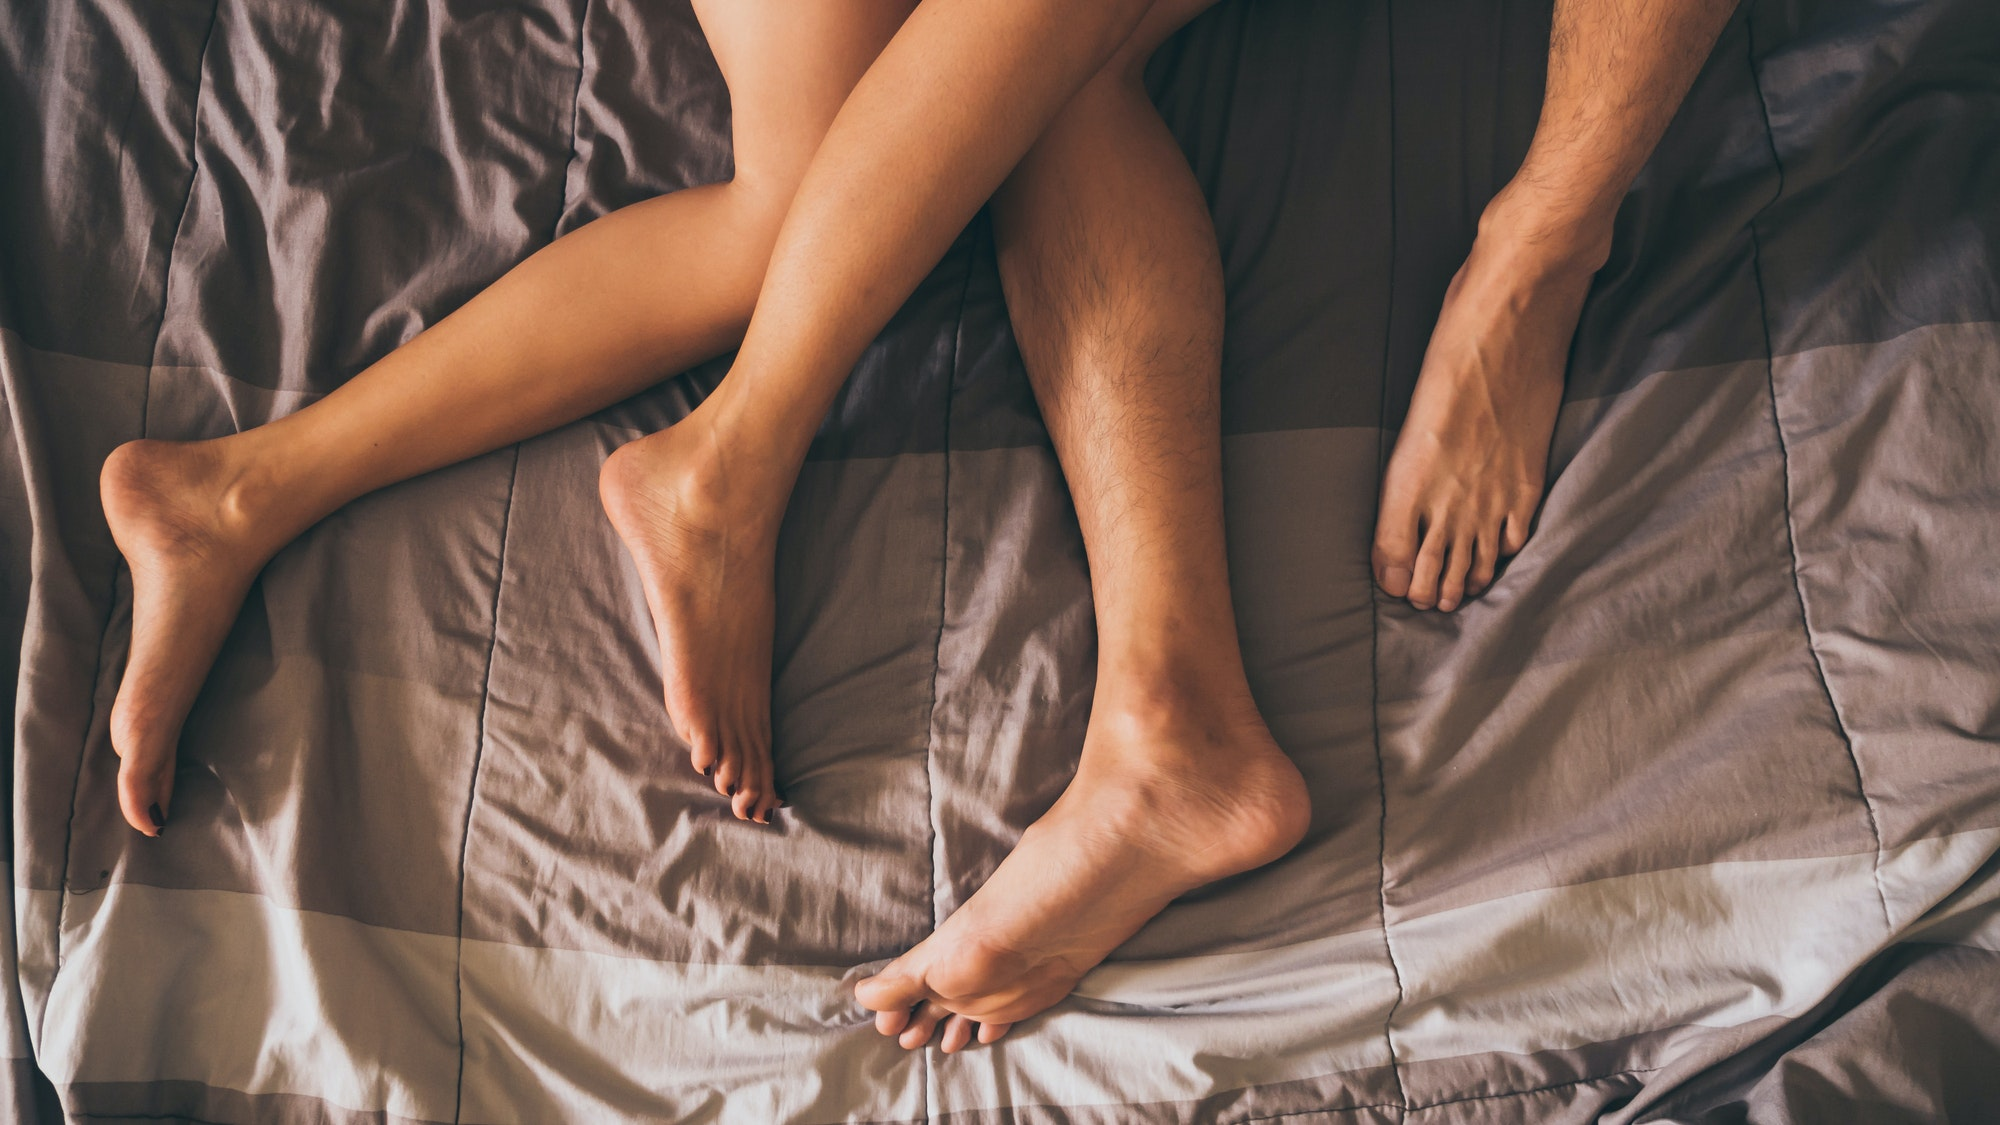 How Having an Active Sex Life Could Give a Boost to Your Skin